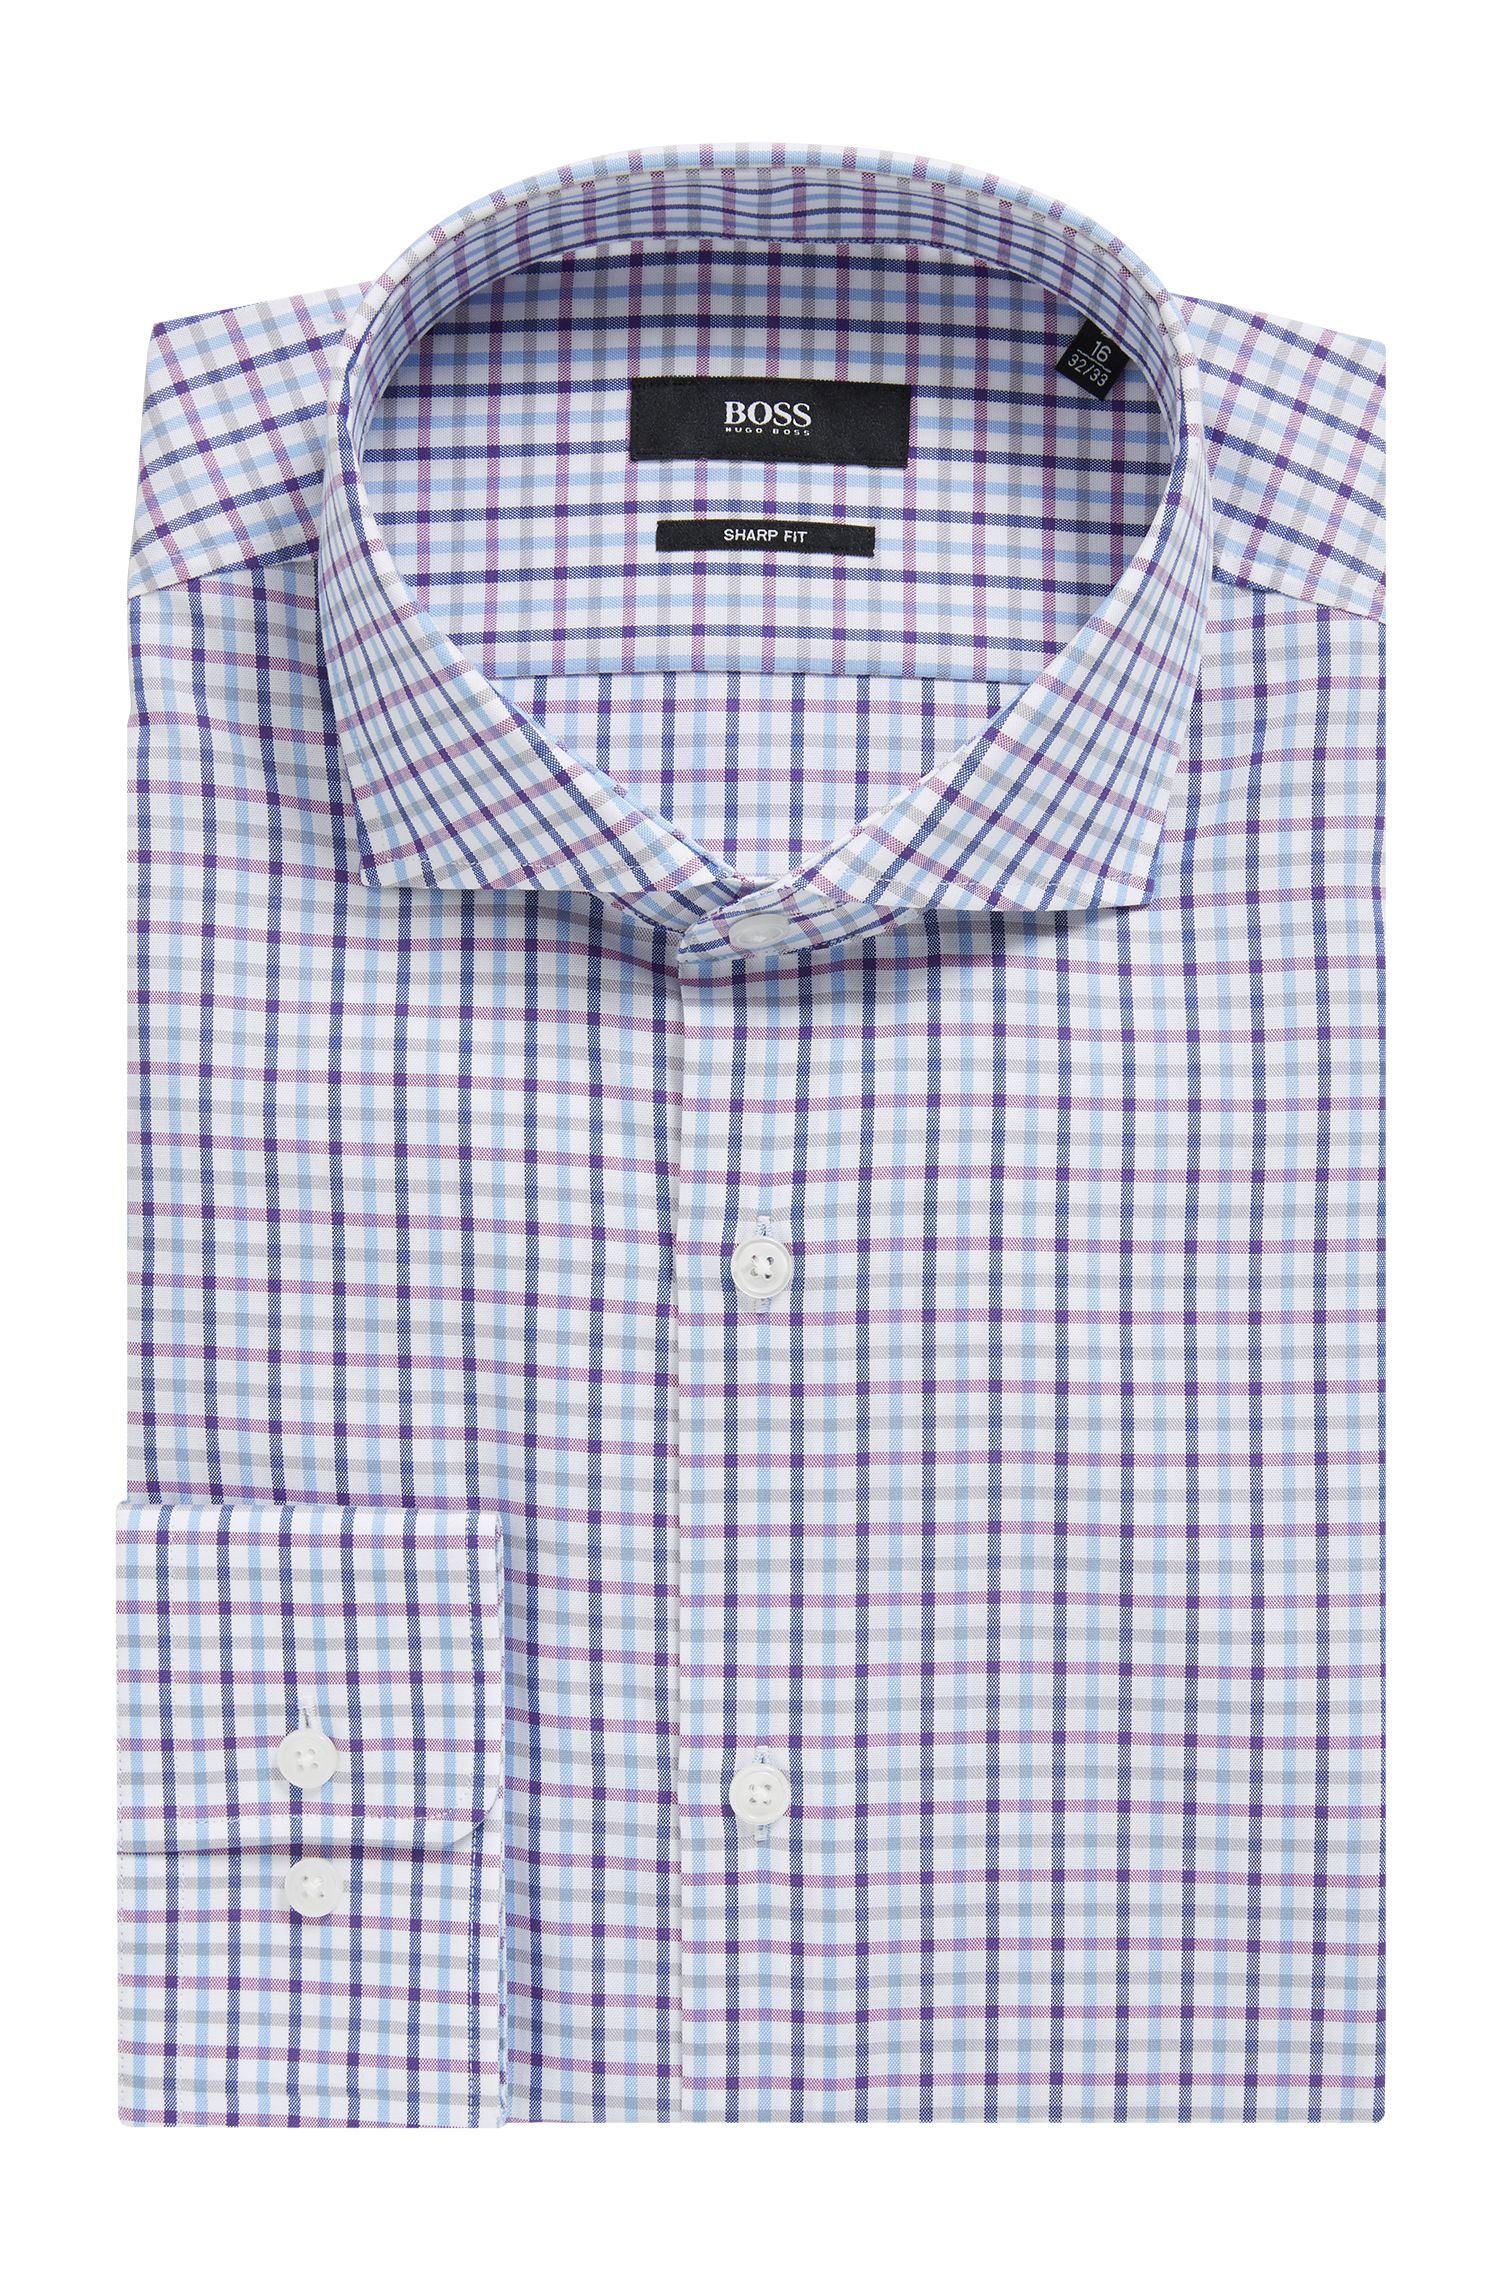 Slim-fit shirt in Oxford cotton with gingham check